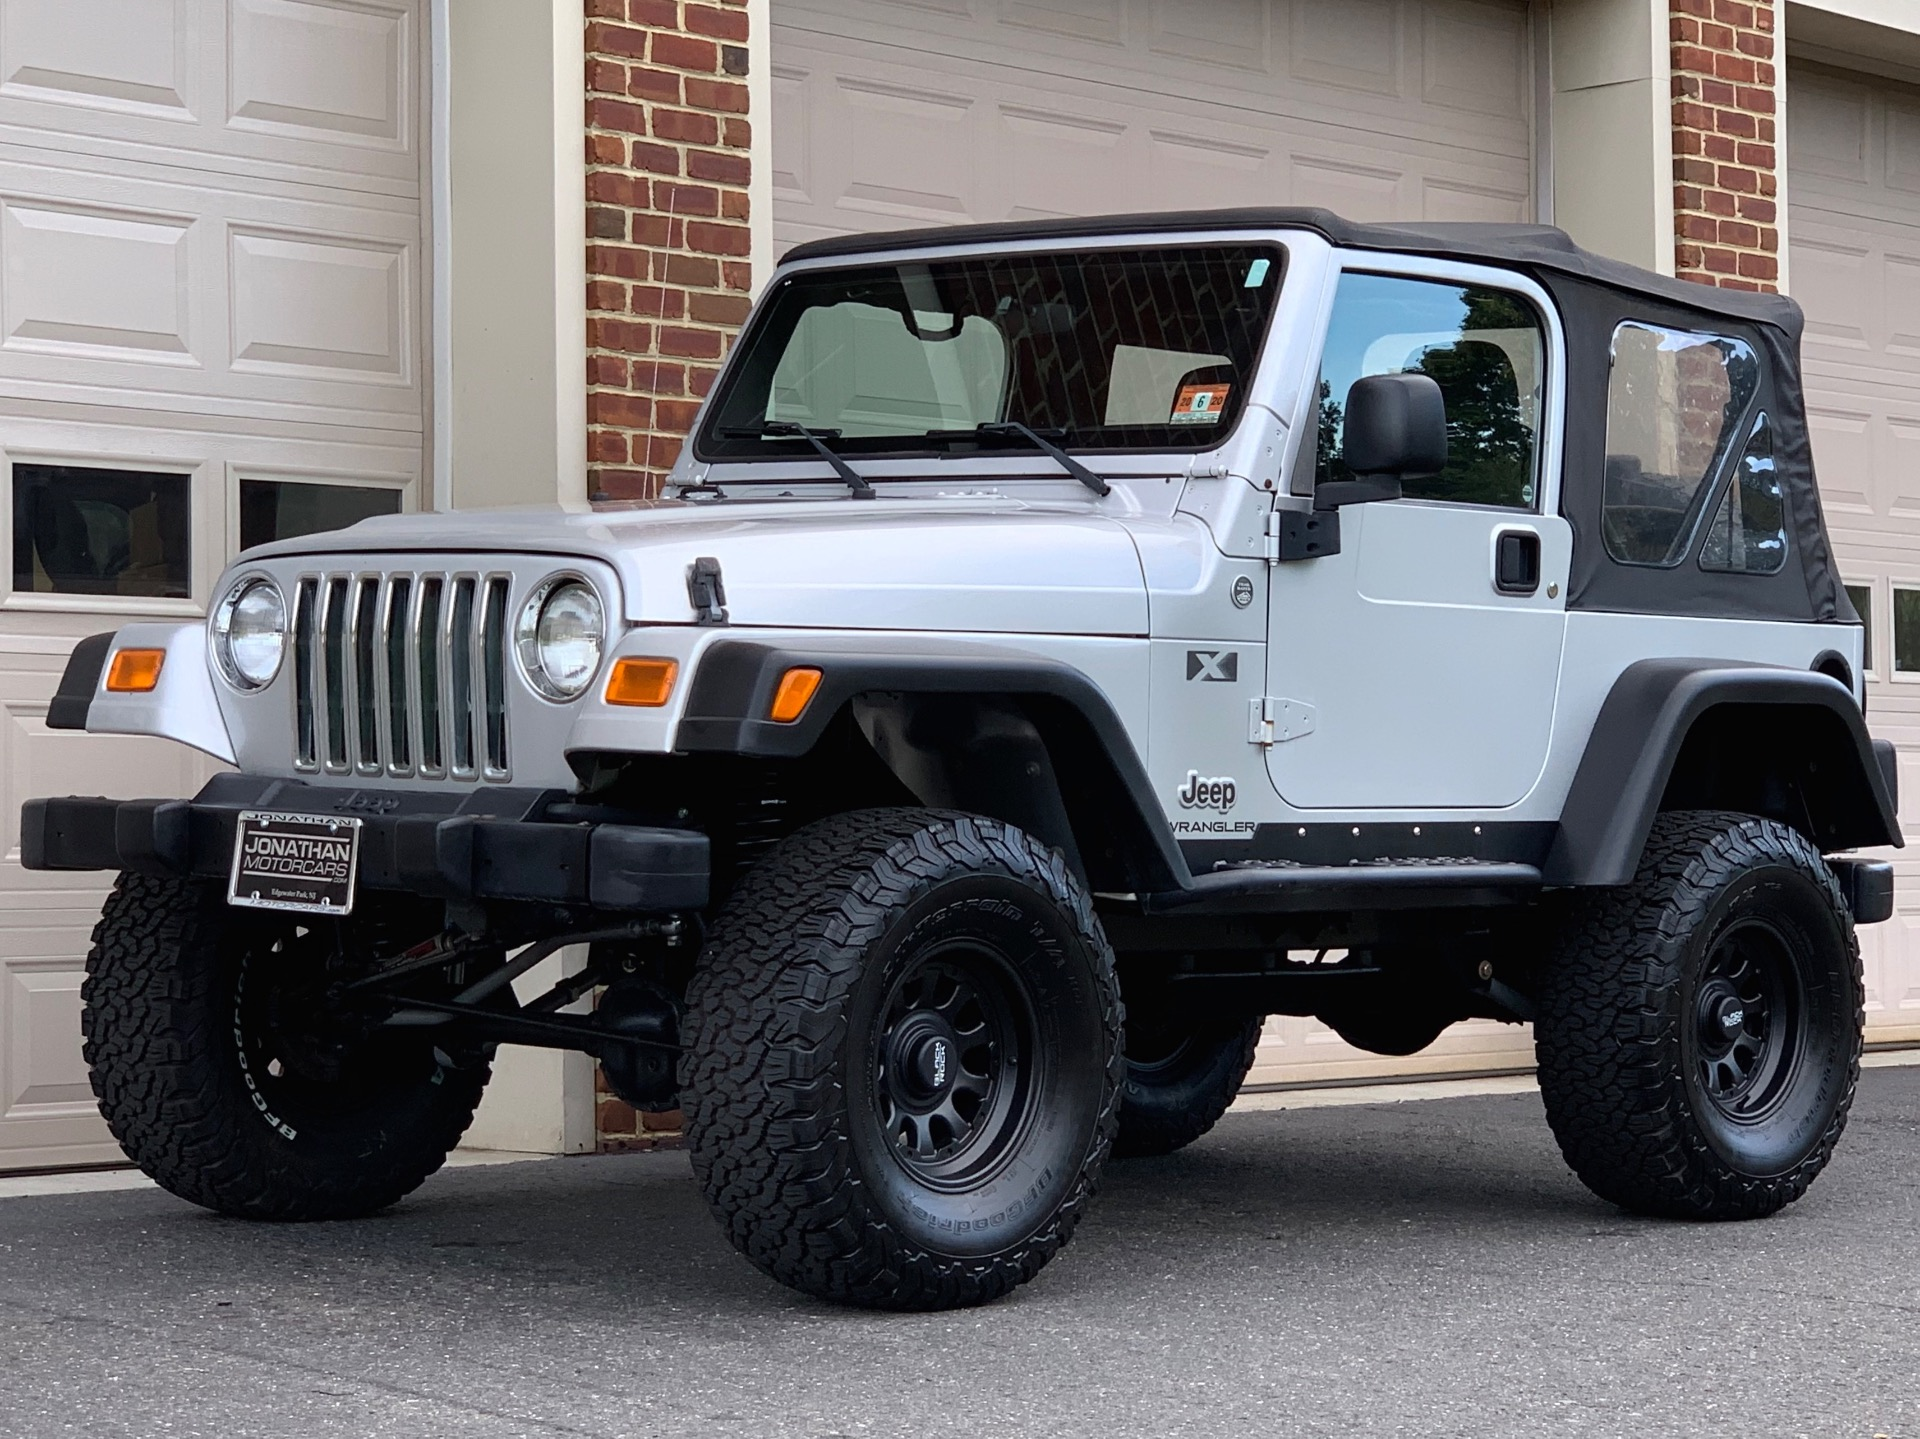 Used-2005-Jeep-Wrangler-X-Lifted